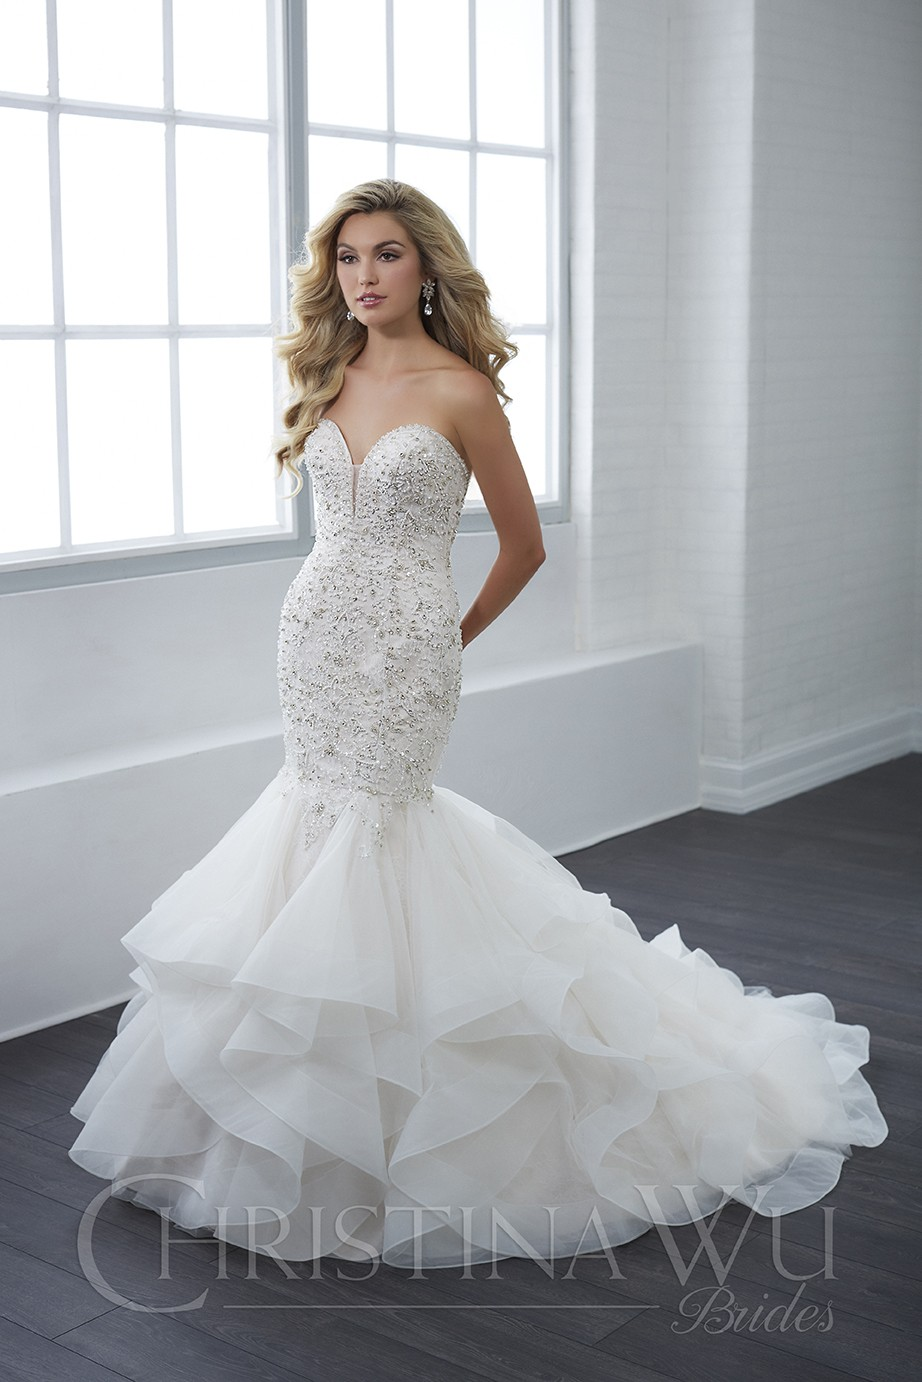 Wedding dress bling Off The Shoulder Sweetheart Neckline with Crystal Bead Works Long Wedding Gown With a Train Hemline